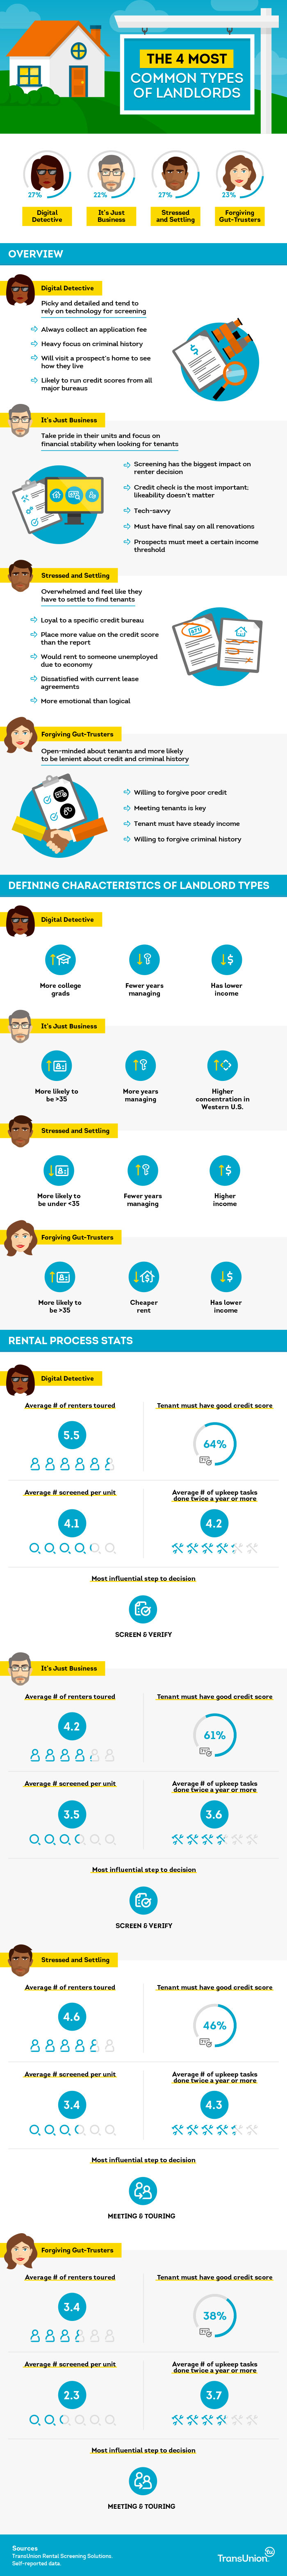 4 Common Types of Landlords TransUnion Research [INFOGRAPHIC] | SmartMove